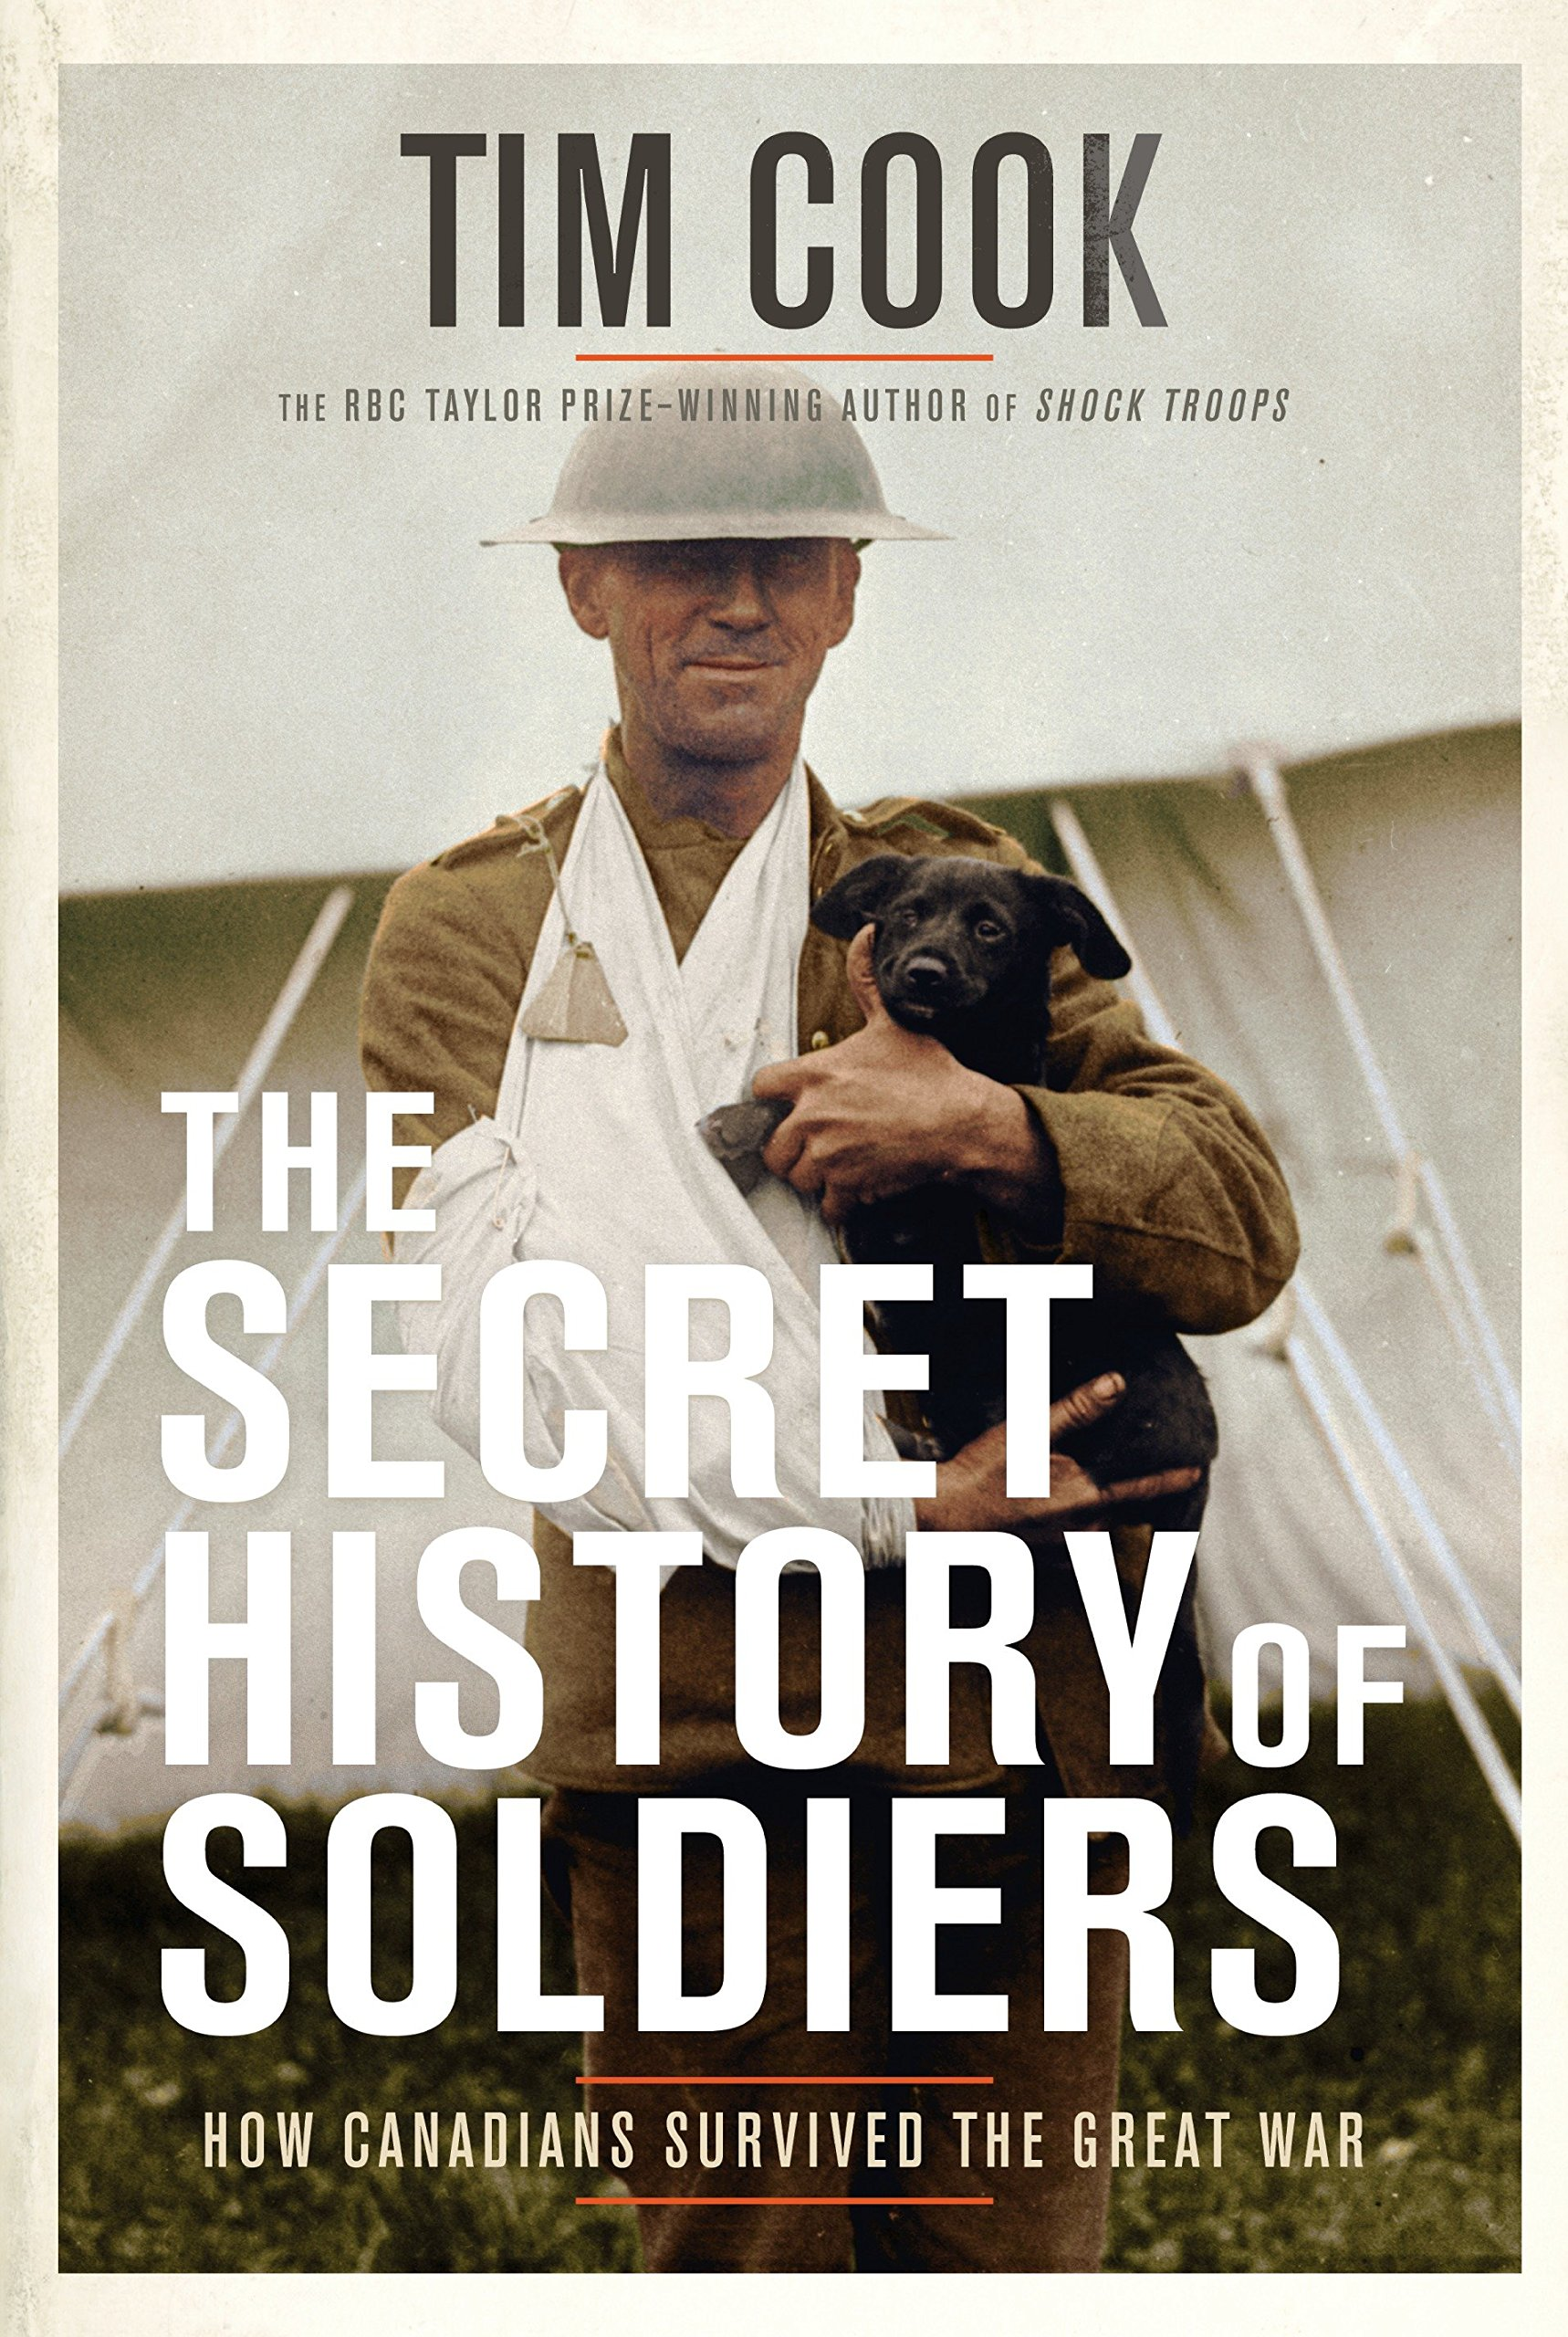 The Secret History of Soldiers: How Canadians Survived the